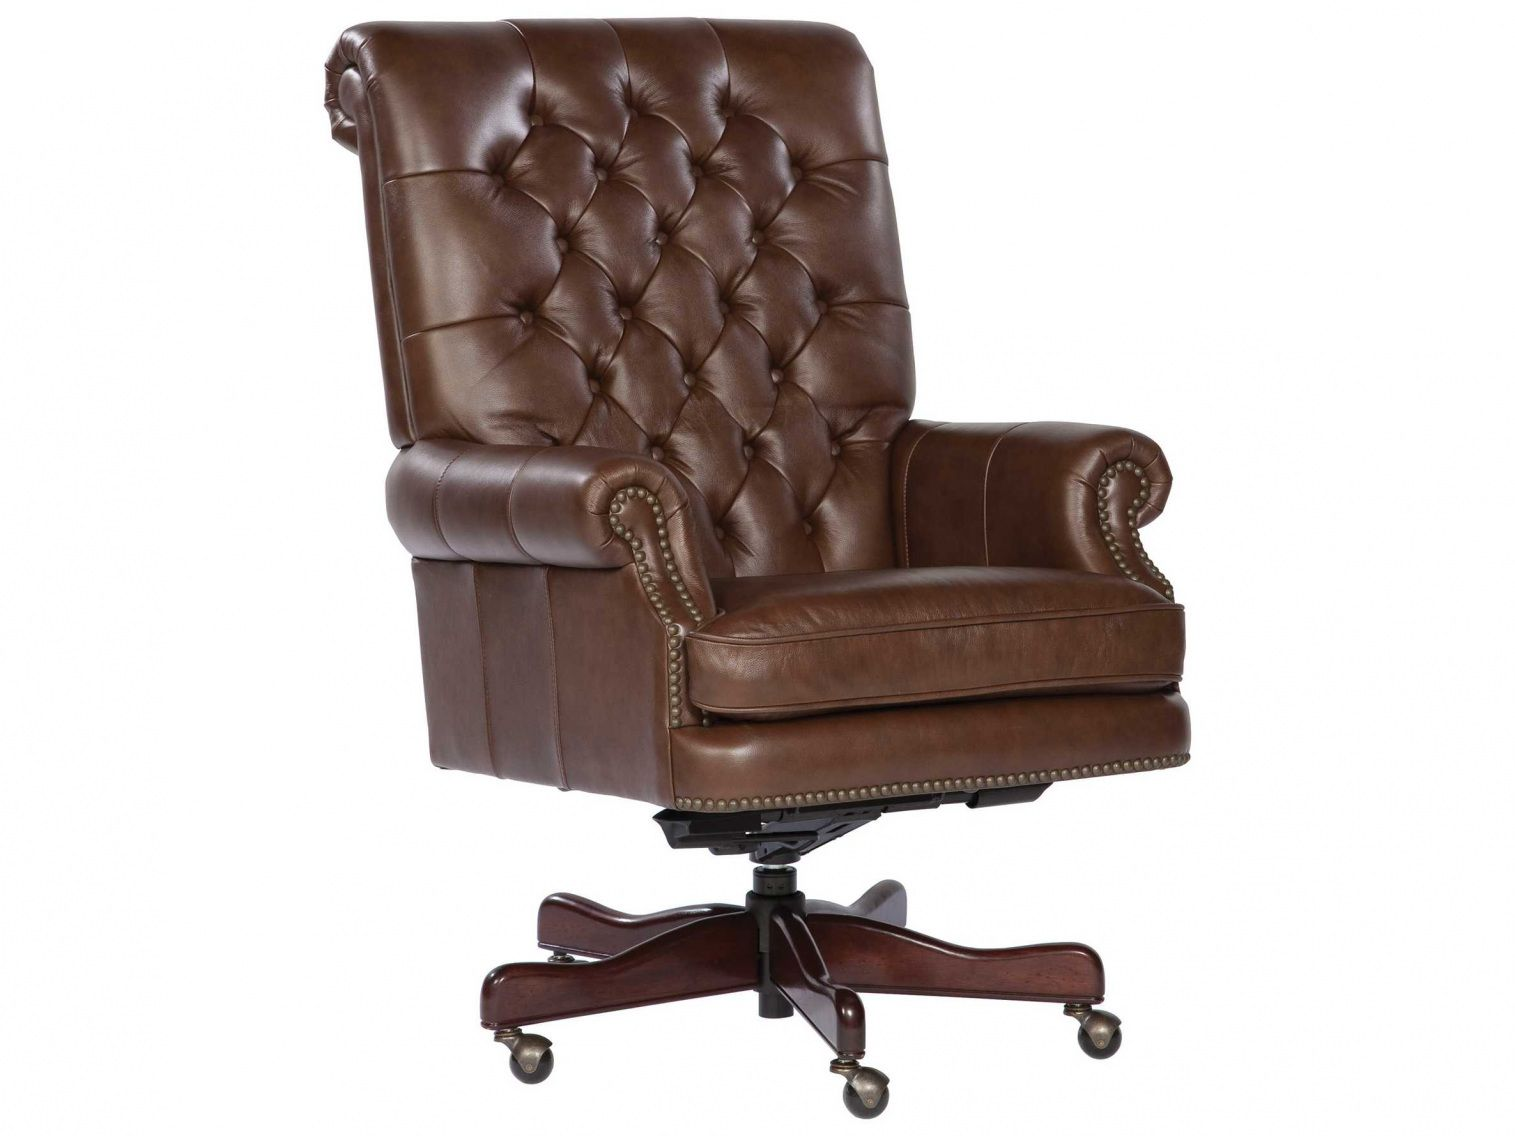 Leather Tufted Office Chair Expensive Home Office